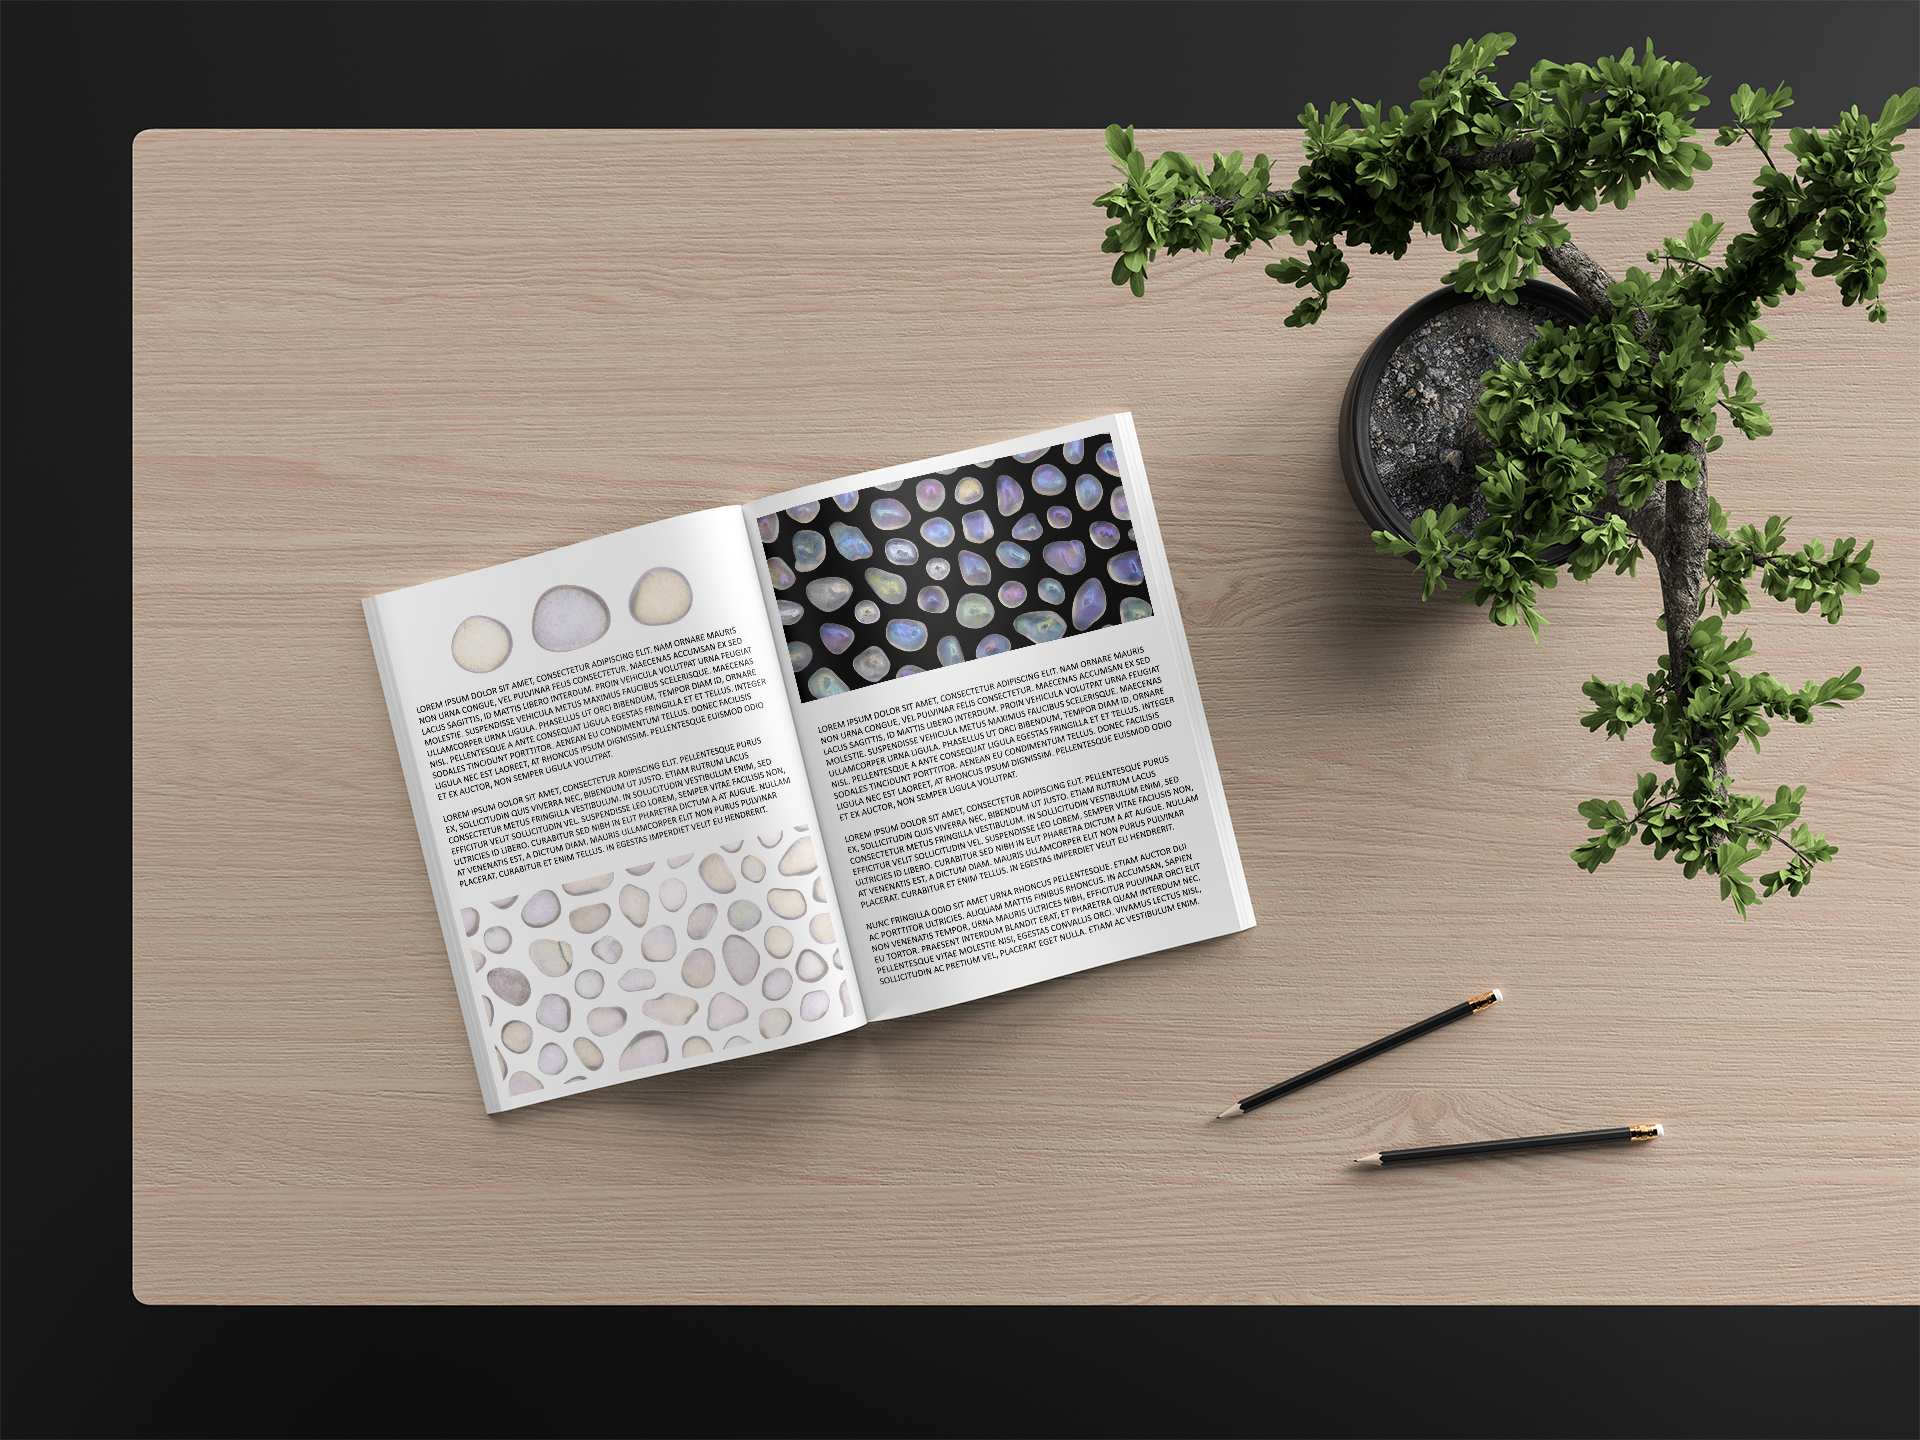 Shimmerstone Background Textures Modern Magazine Article Illustrations Preview